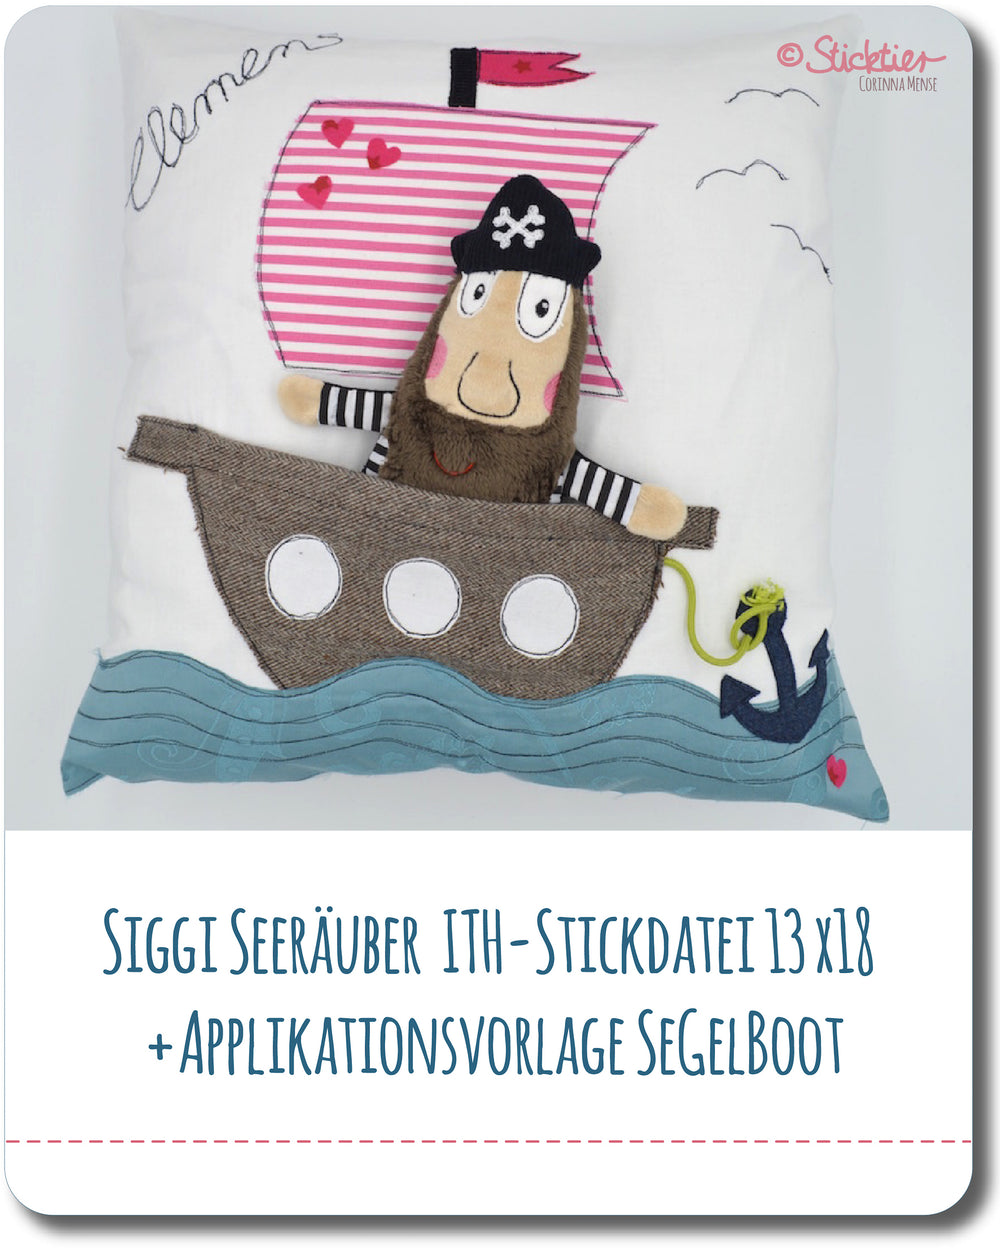 Stickdatei ITH Pirat 13x18 + Applikationsvorlage Segelboot